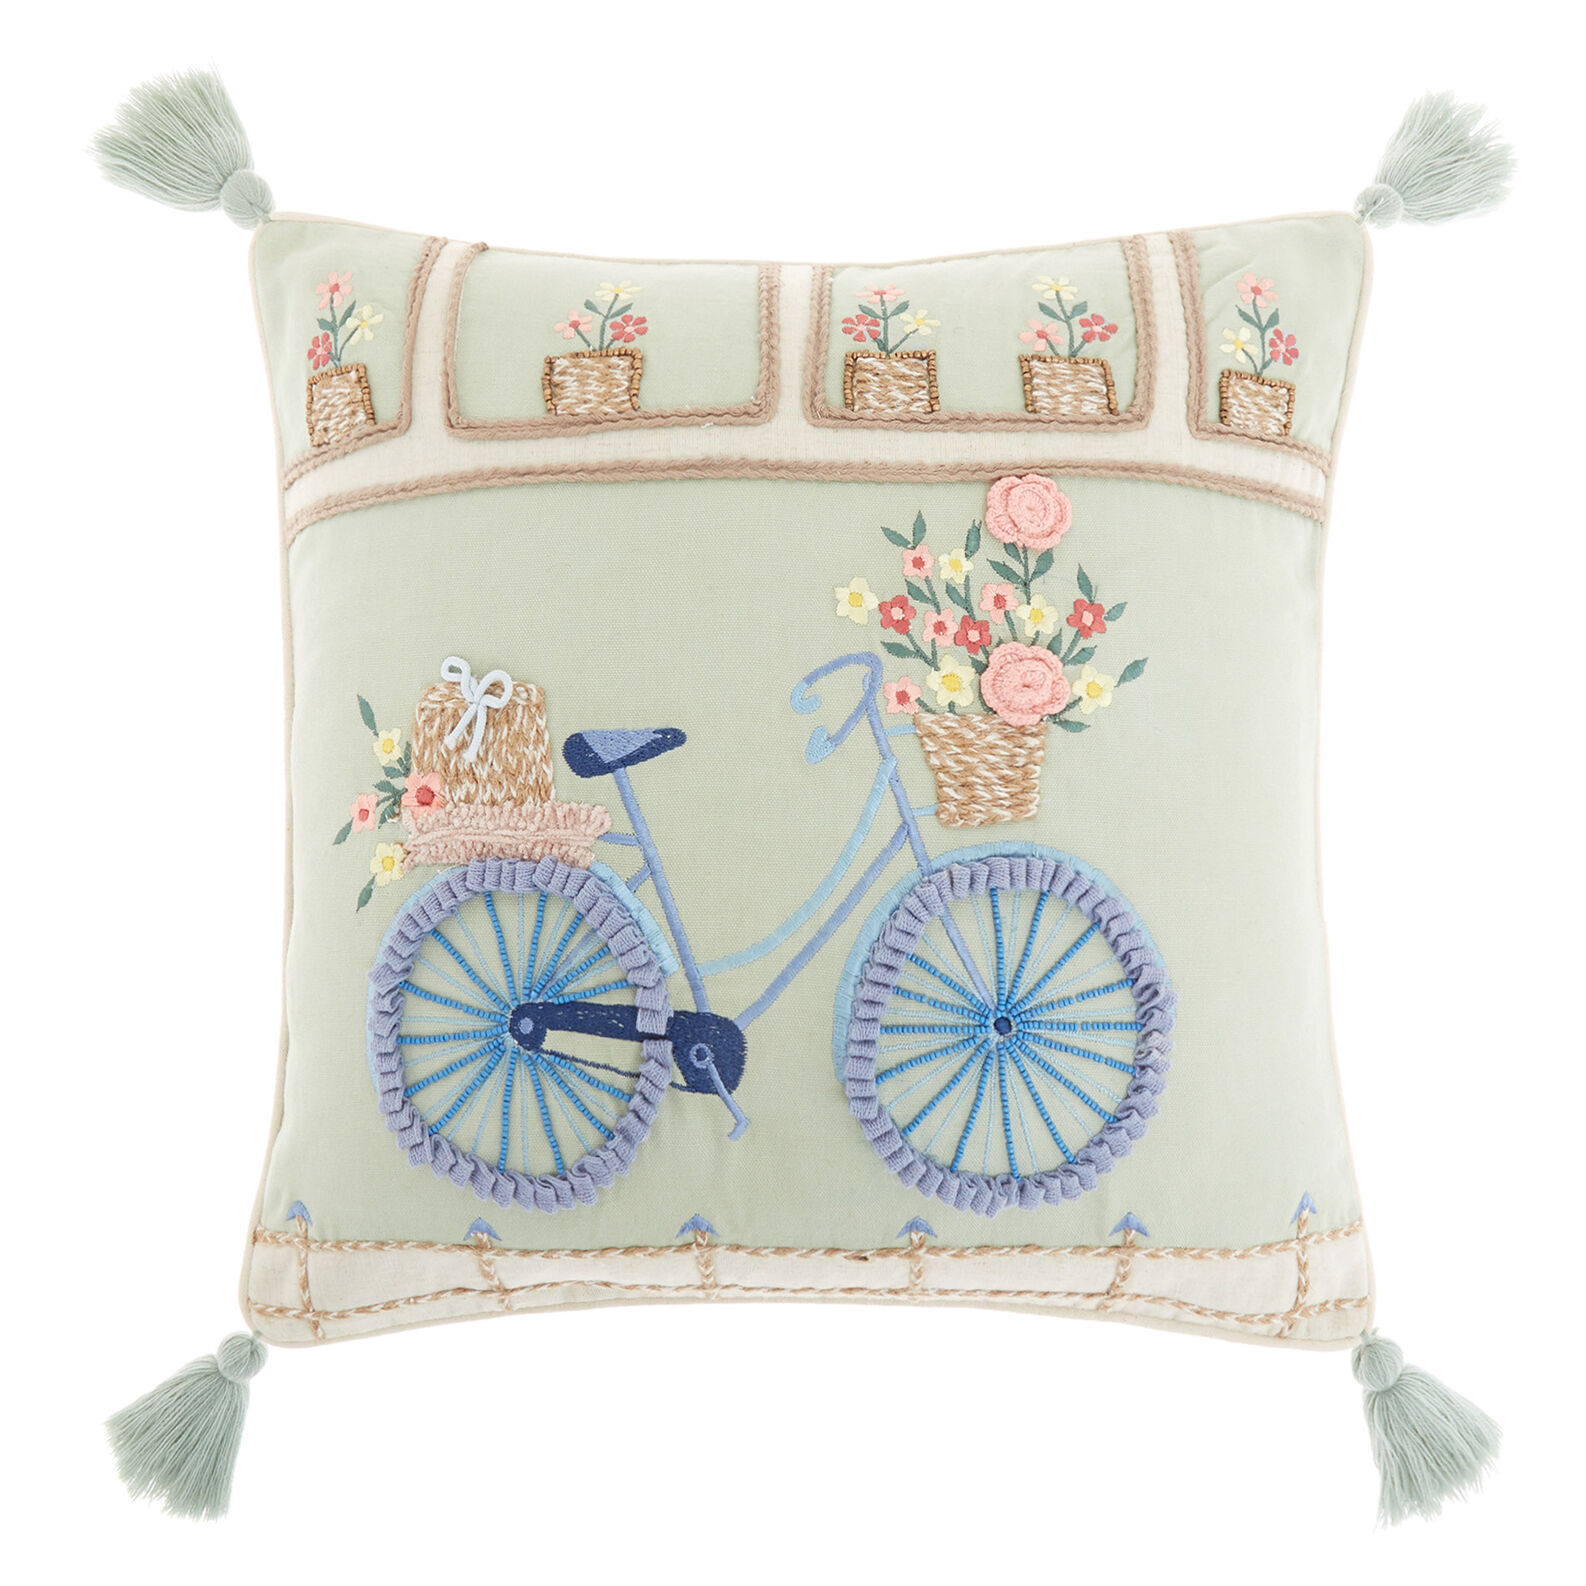 Cotton cushion with embroidered bicycle 45x45cm